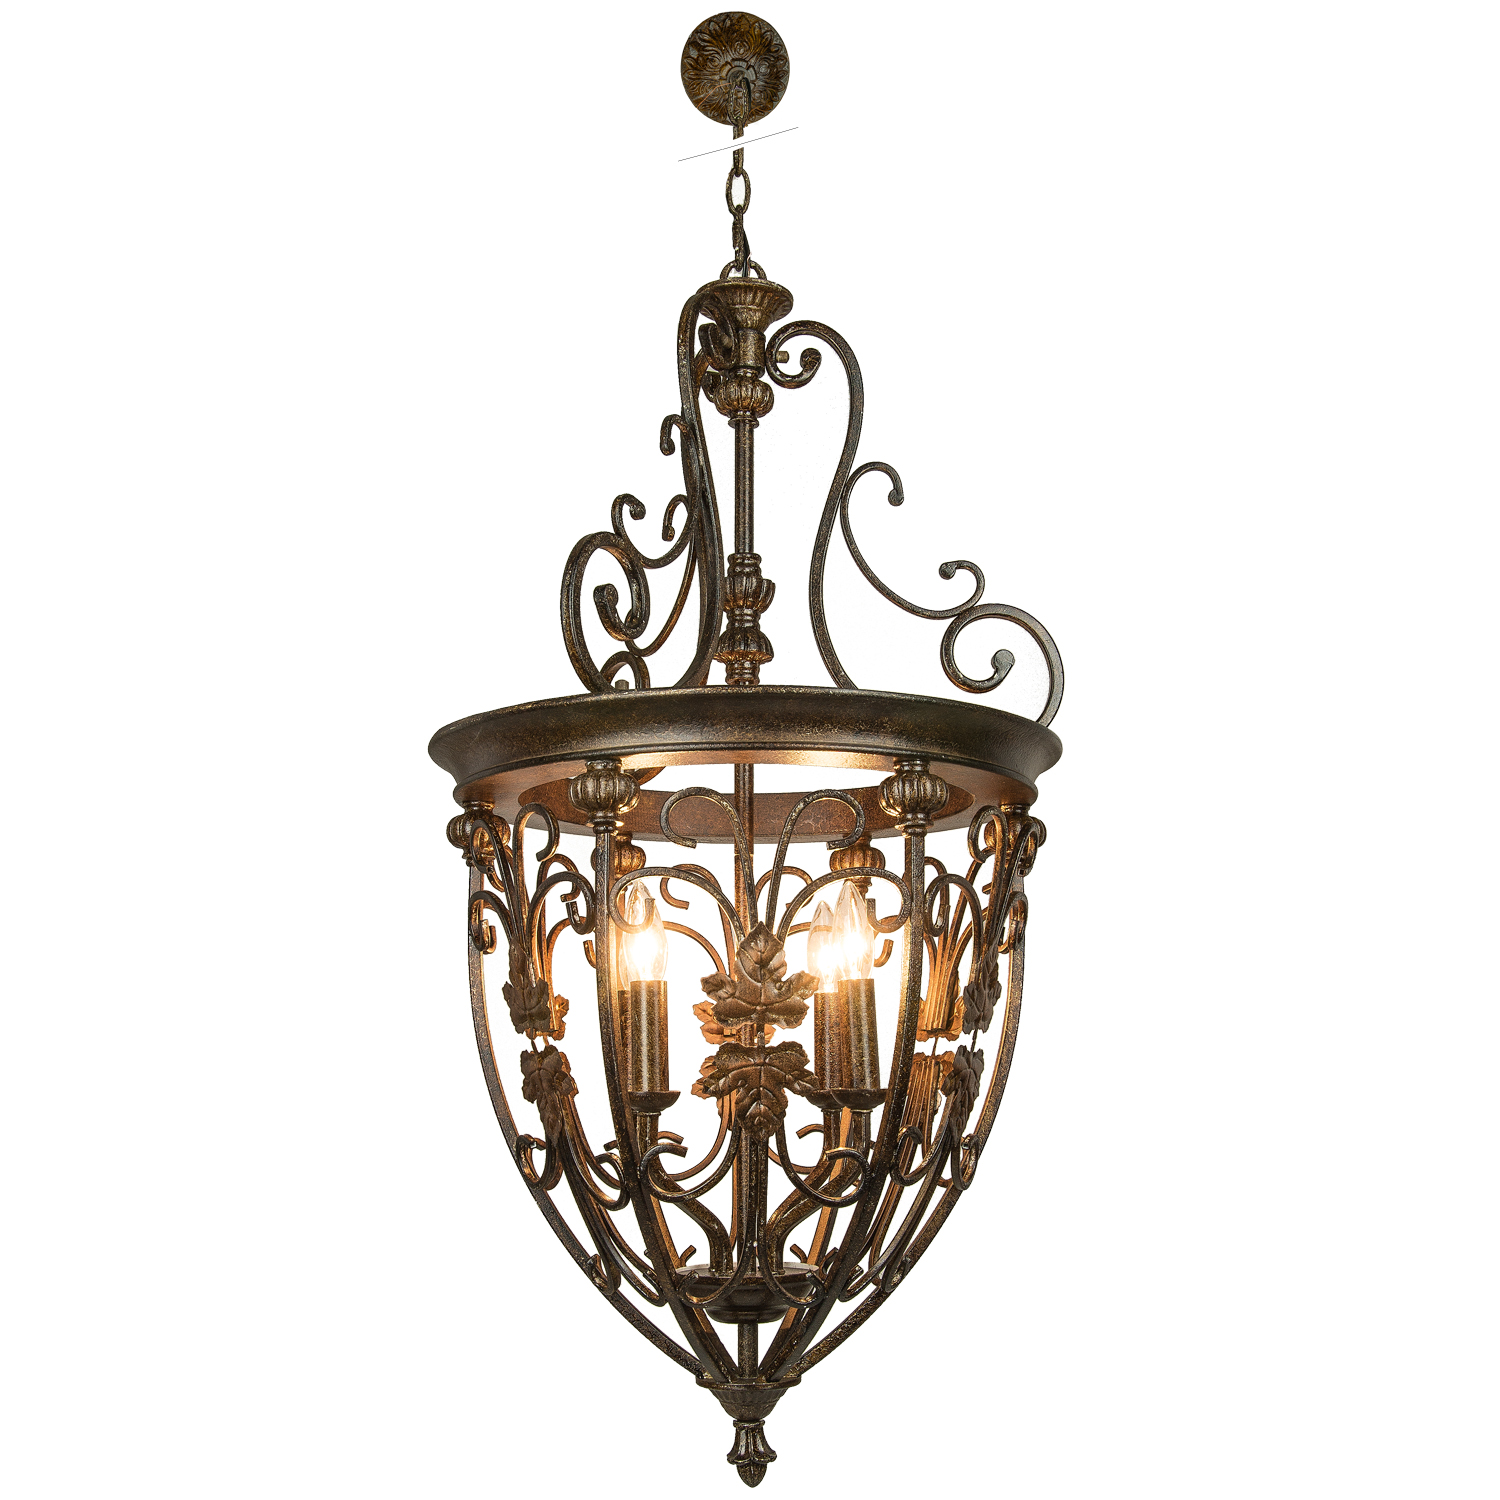 Hanging Light Fixture: Joshua Marshal 700042-001 4 Light Hanging Lantern Light